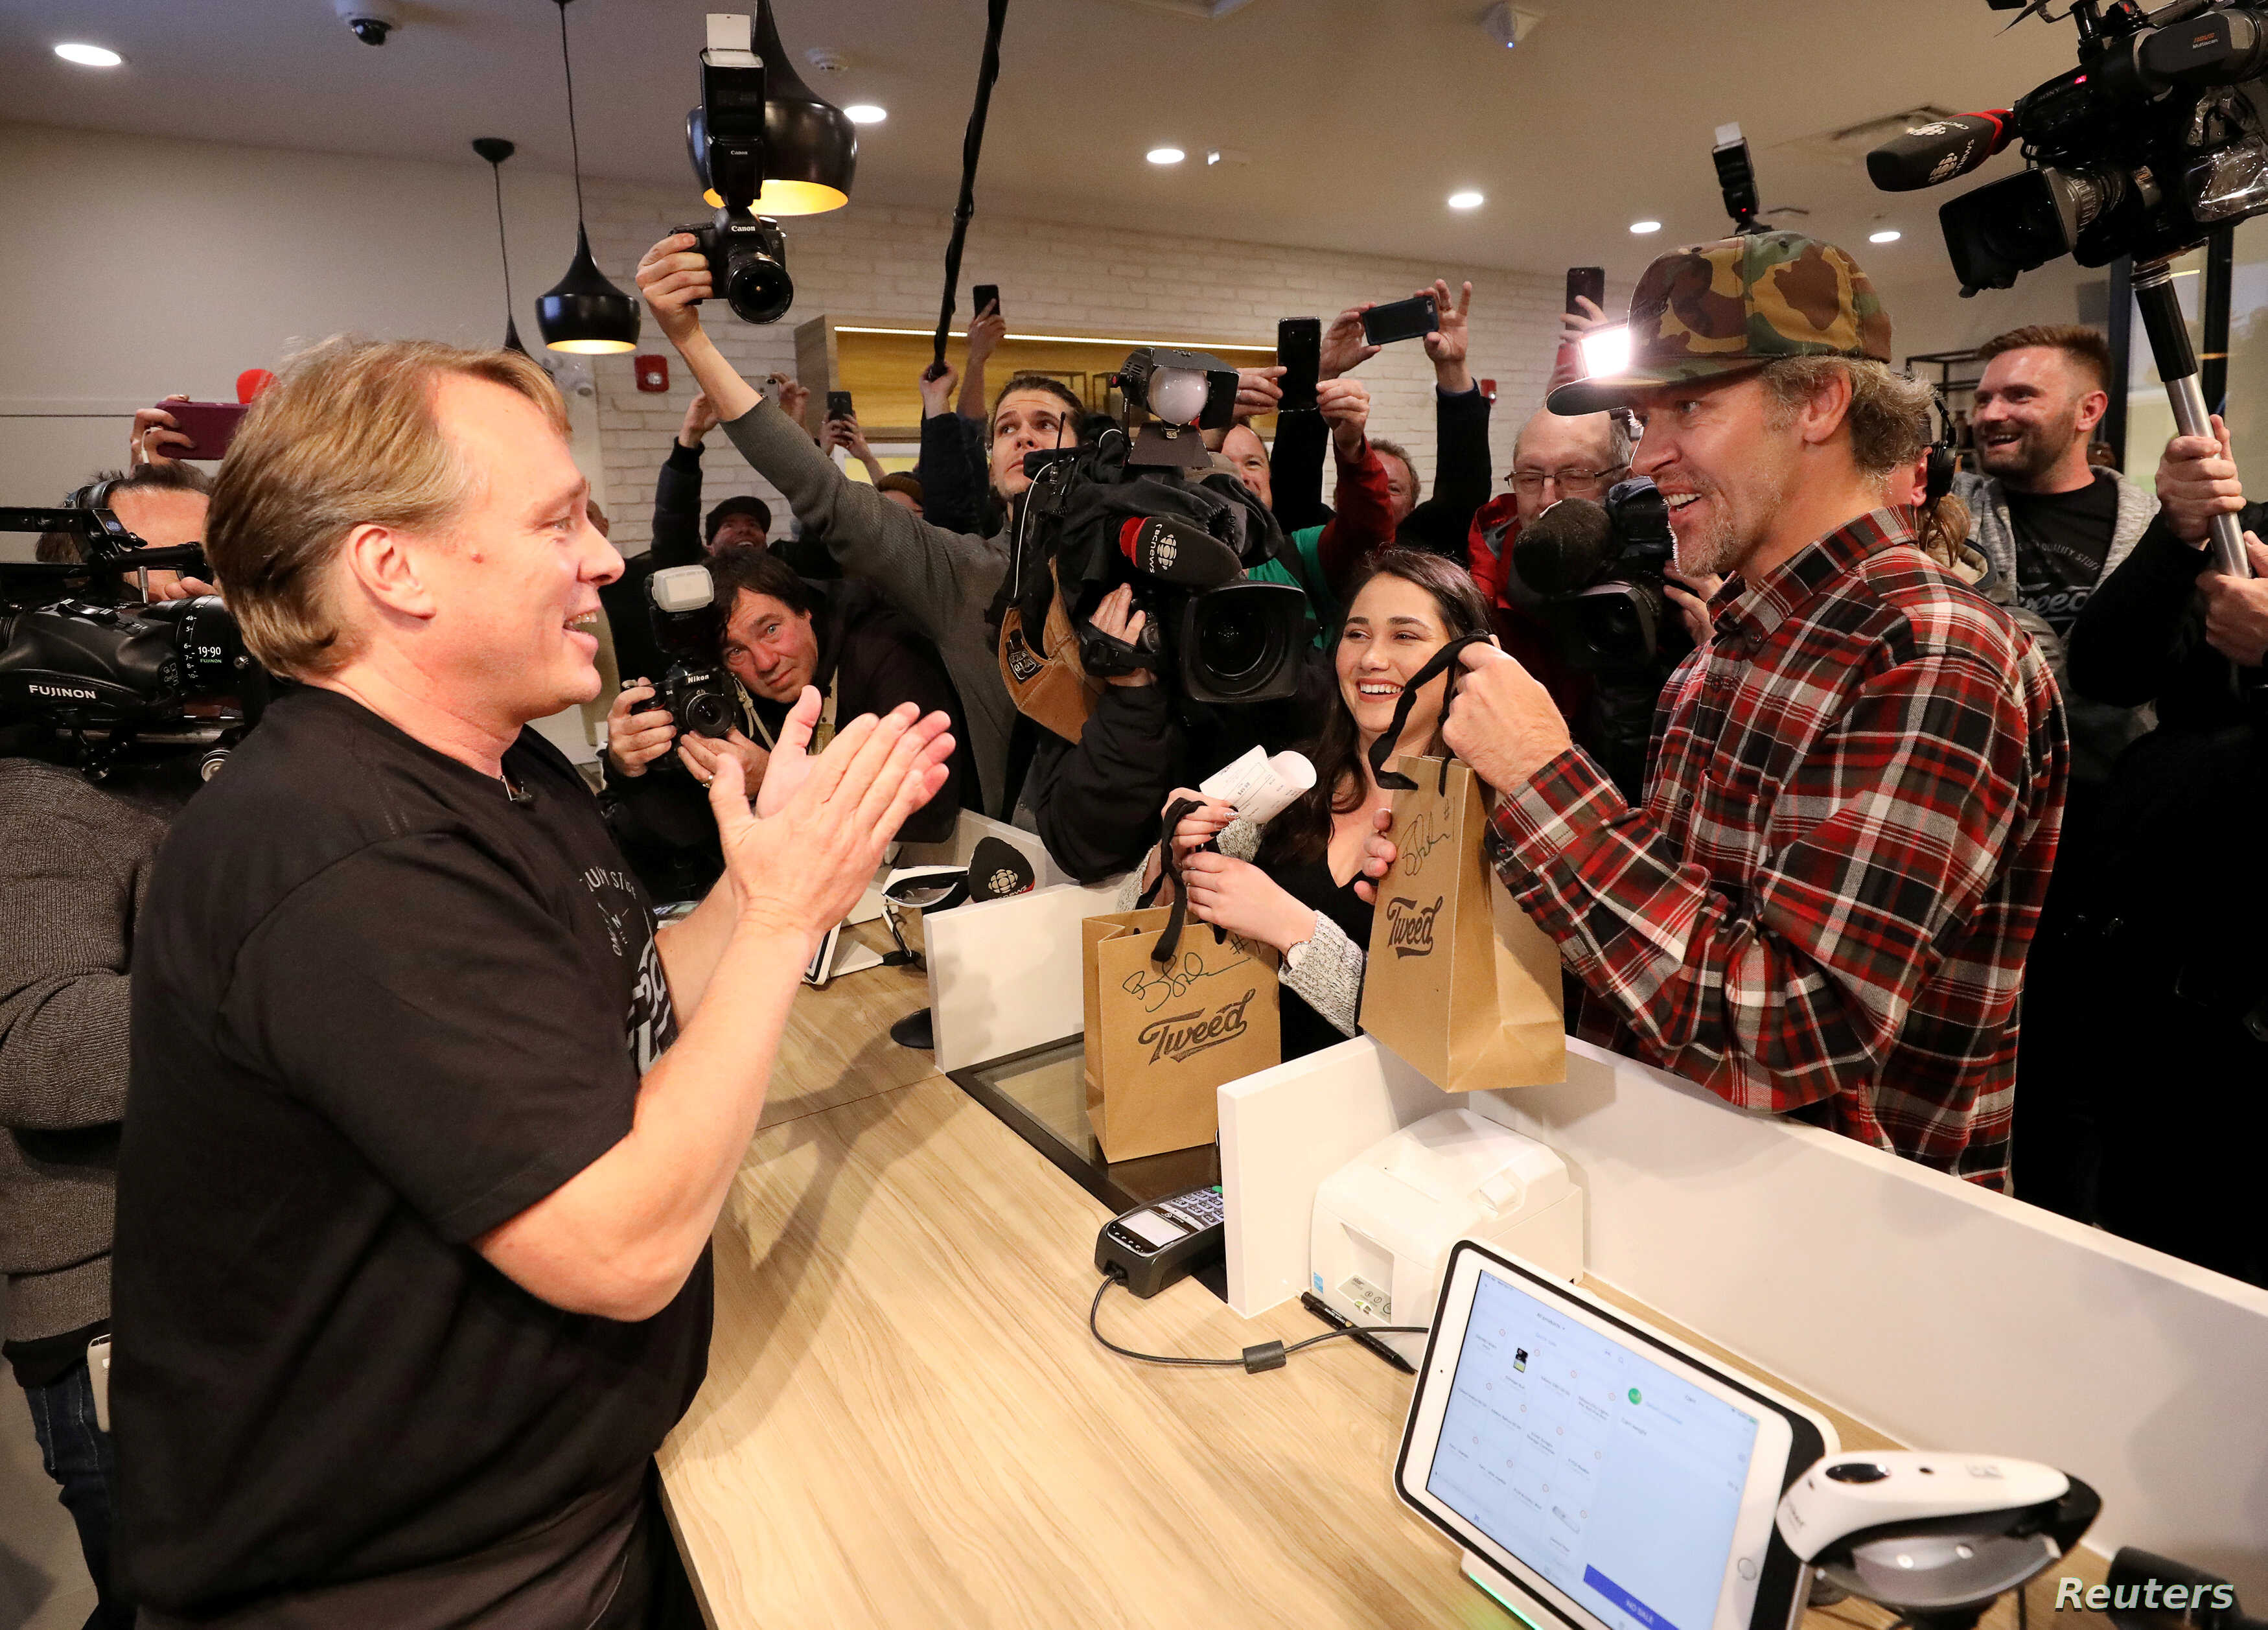 Canopy Growth CEO Bruce Linton applauds after handing Ian Power and Nikki Rose, who were first in line to purchase the first legal recreational marijuana after midnight, their purchases at a Tweed retail store in St John's, Newfoundland and Labrador,